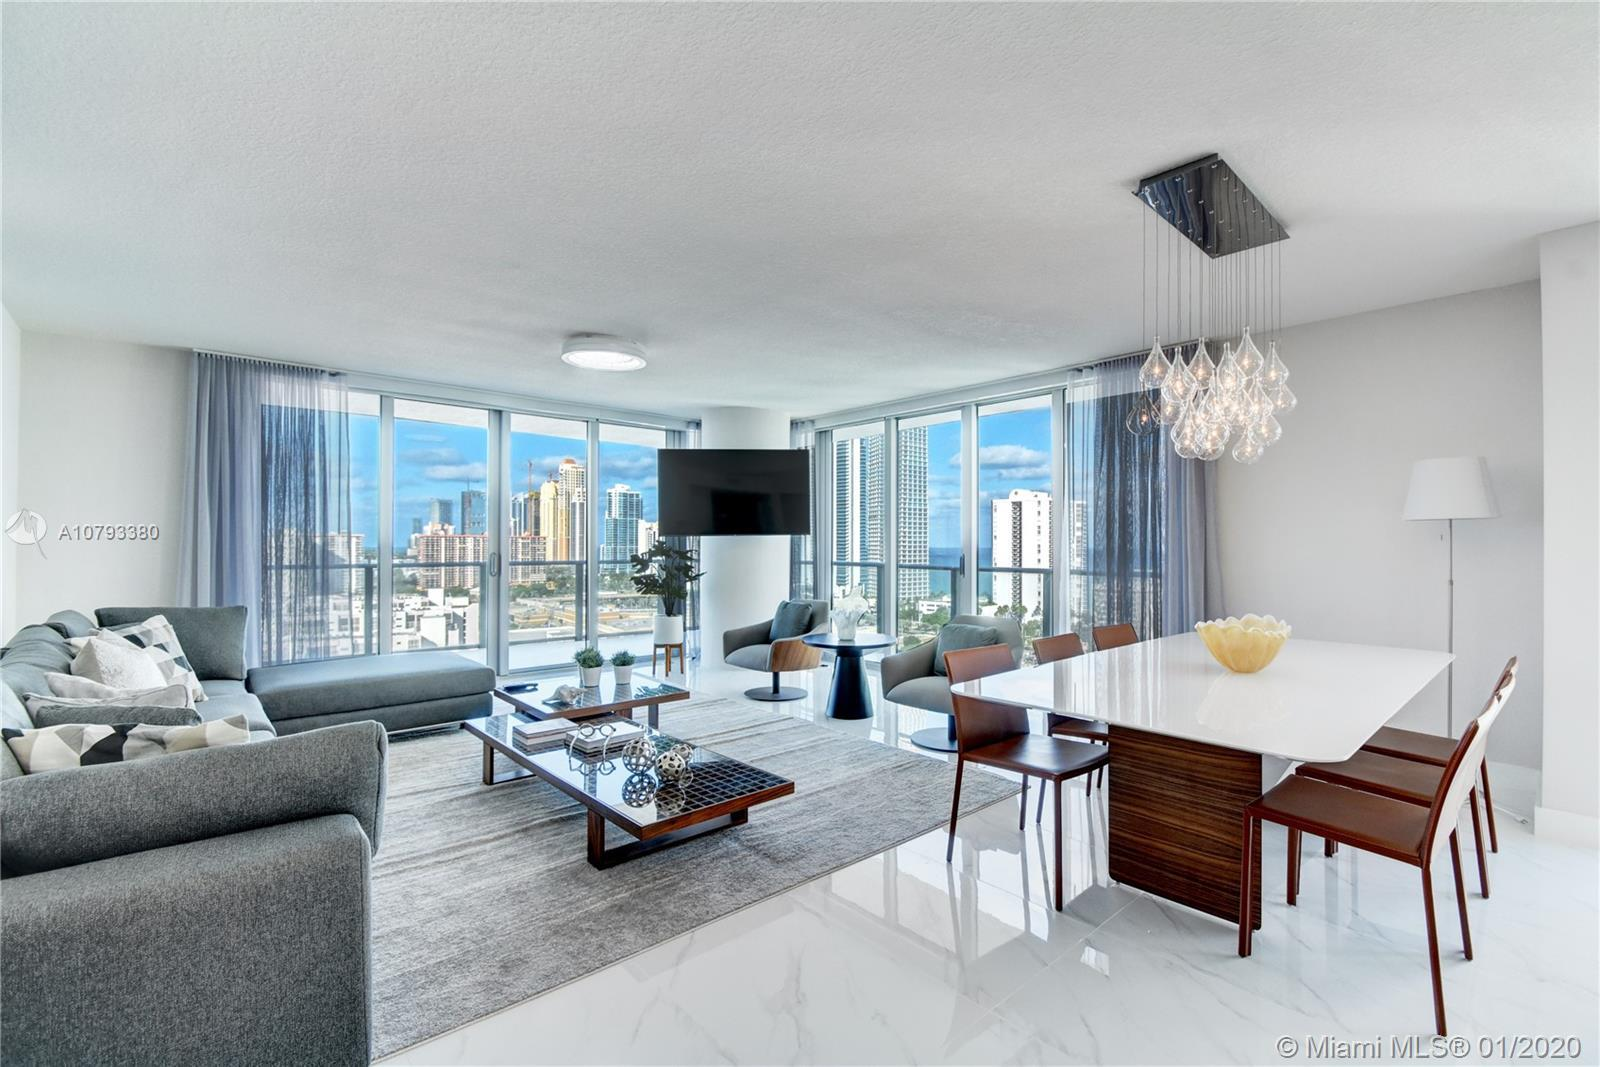 Wow! PRICE TO SELL, completely furnished, awesome views from this high floor to the city, ocean, and